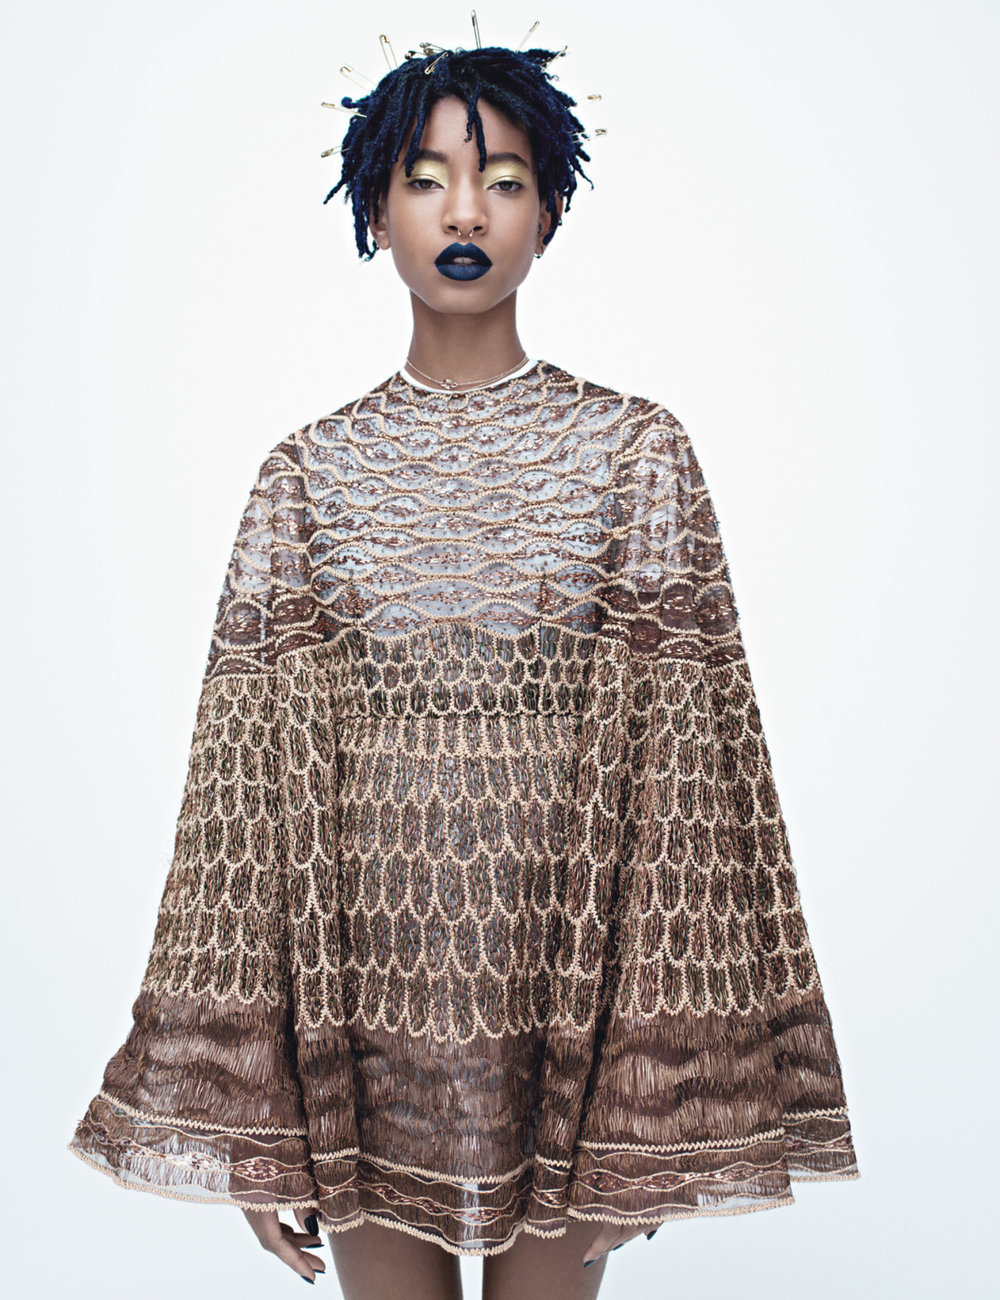 wmagazine: Willow Smith Is Next, Next, Next! Willow Smith photographed by Willy Vanderperre, styled by Paul Cavaco; W Magazine April 2016. Stunning.